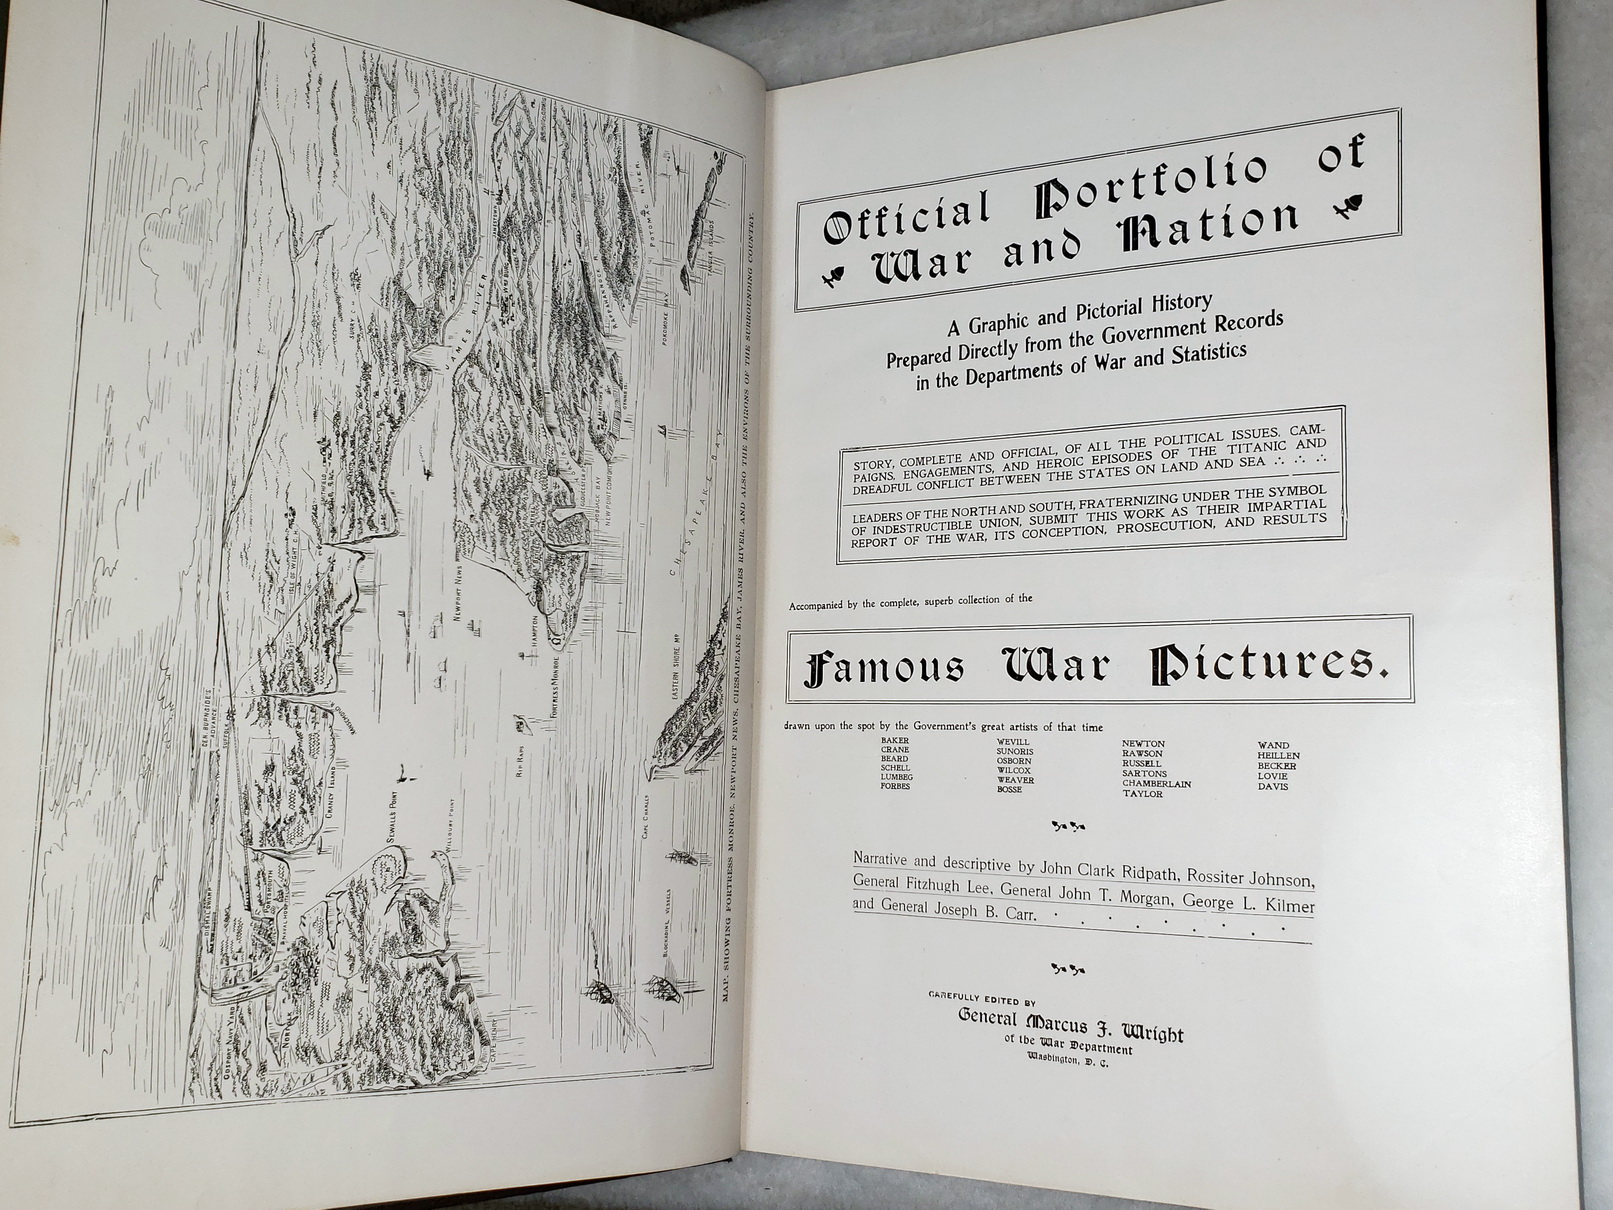 Image for Official Portfolio of War and Nation:  A Graphic and Pictorial History Prepared Directly from the Government Records in the Departments of War and Statistics...